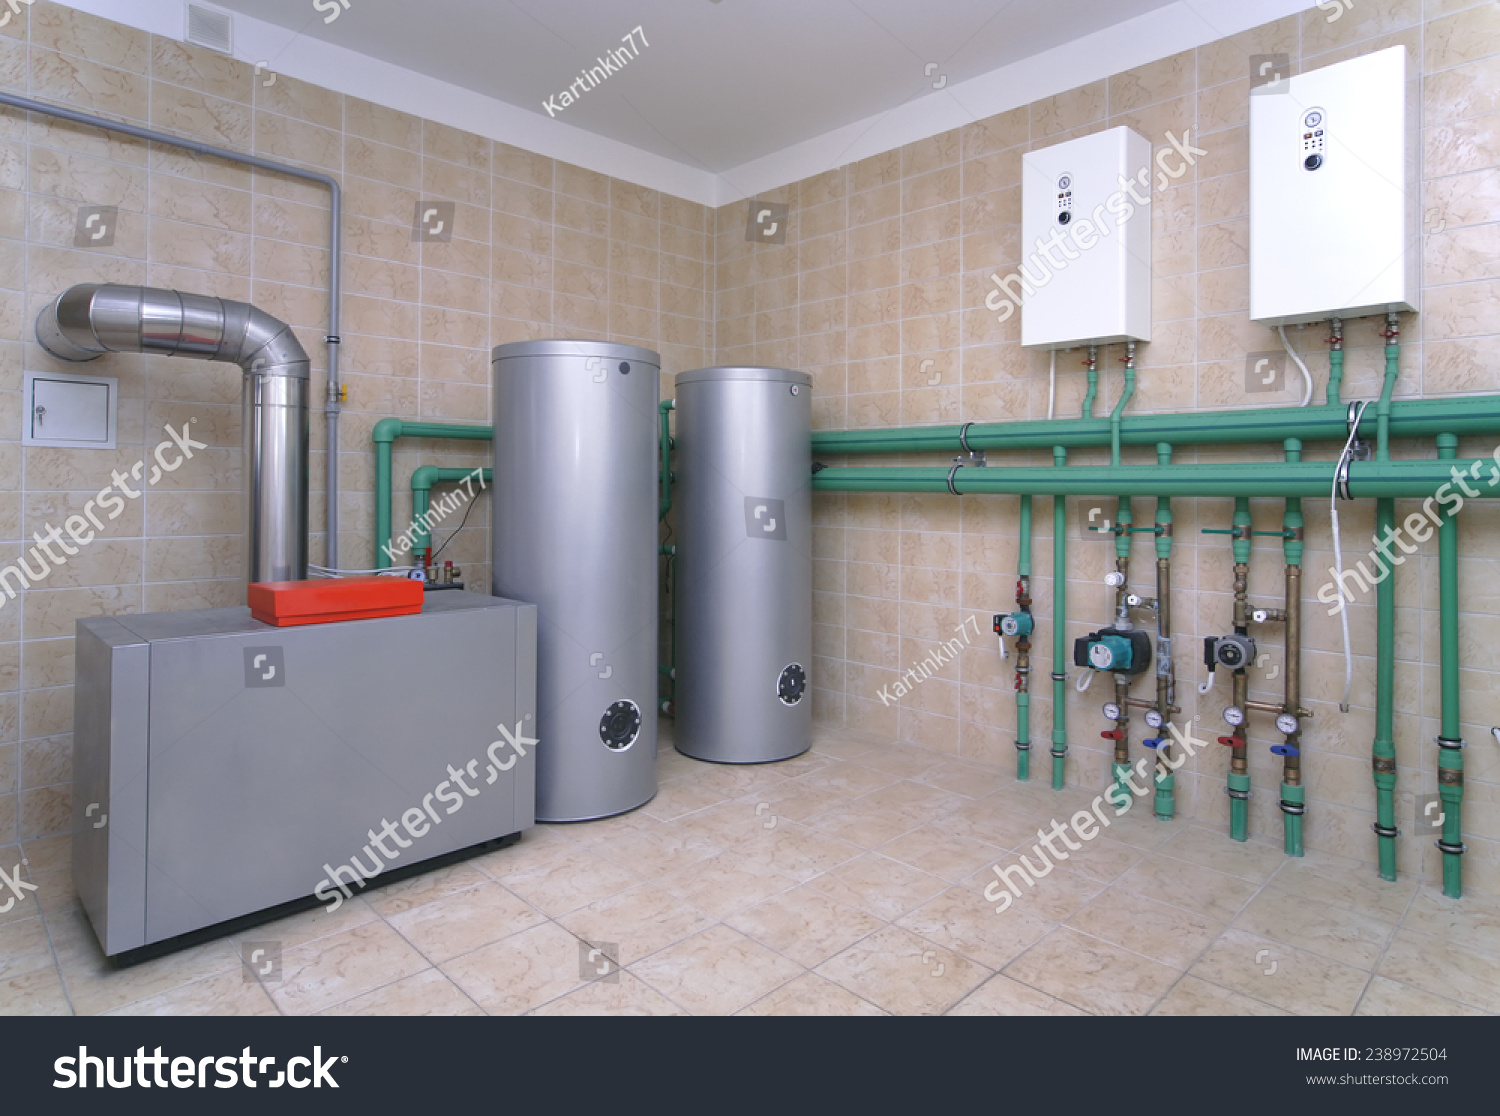 Boiler room heating system private house stock photo for Room heating systems